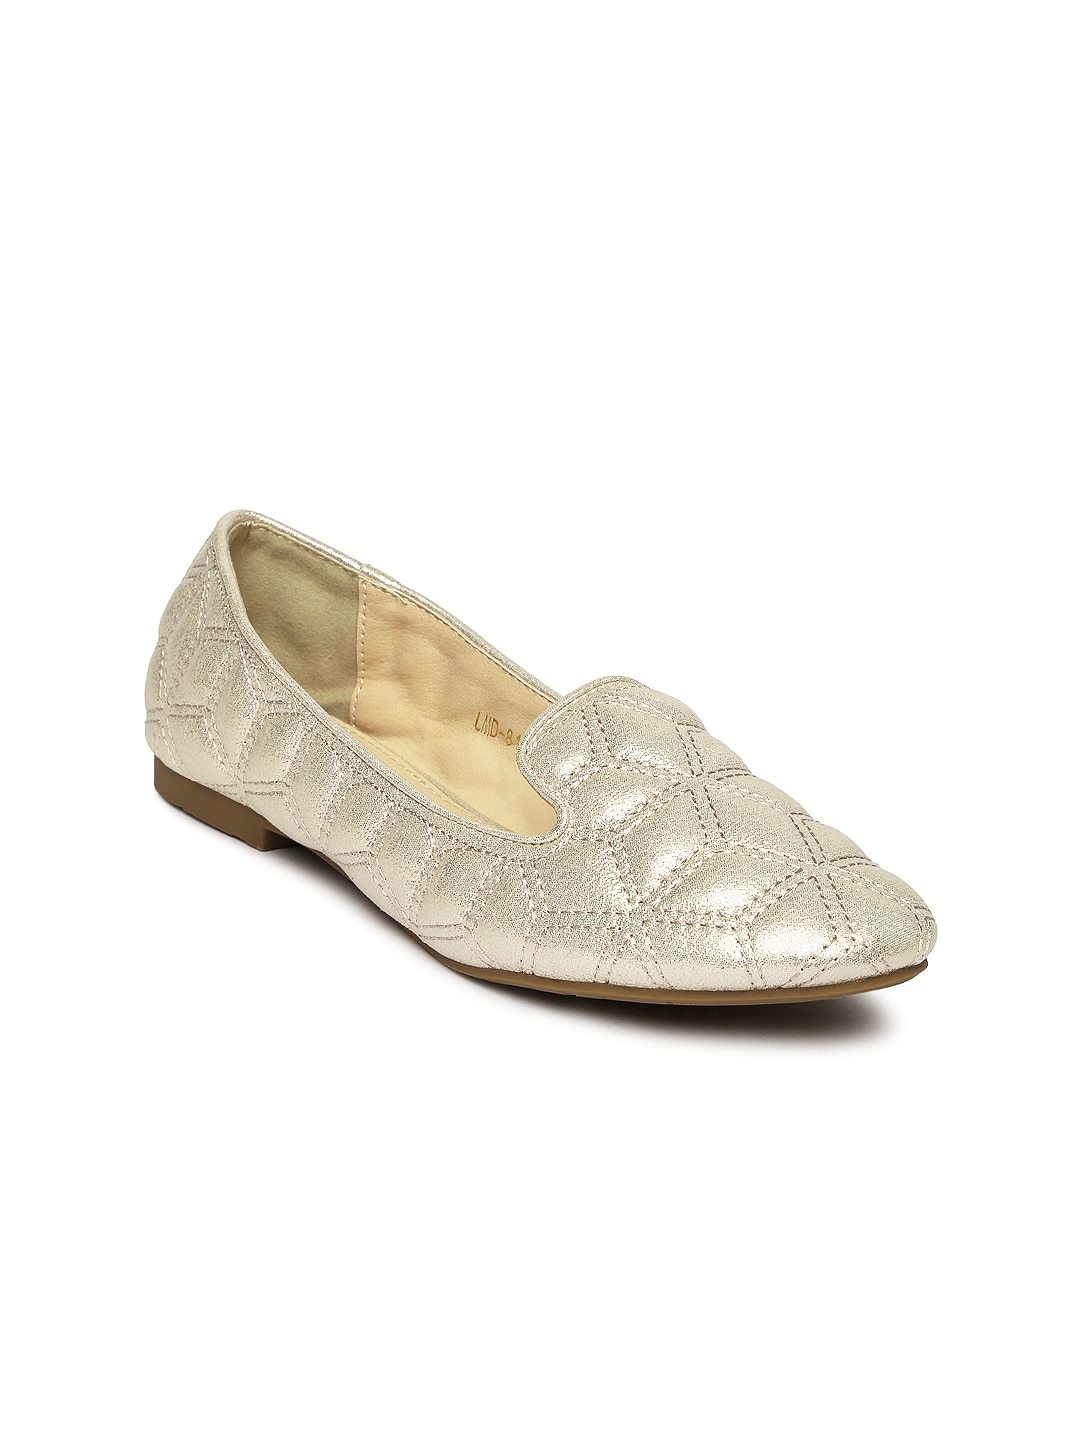 Tresmode Gold-Toned Flat Shoes